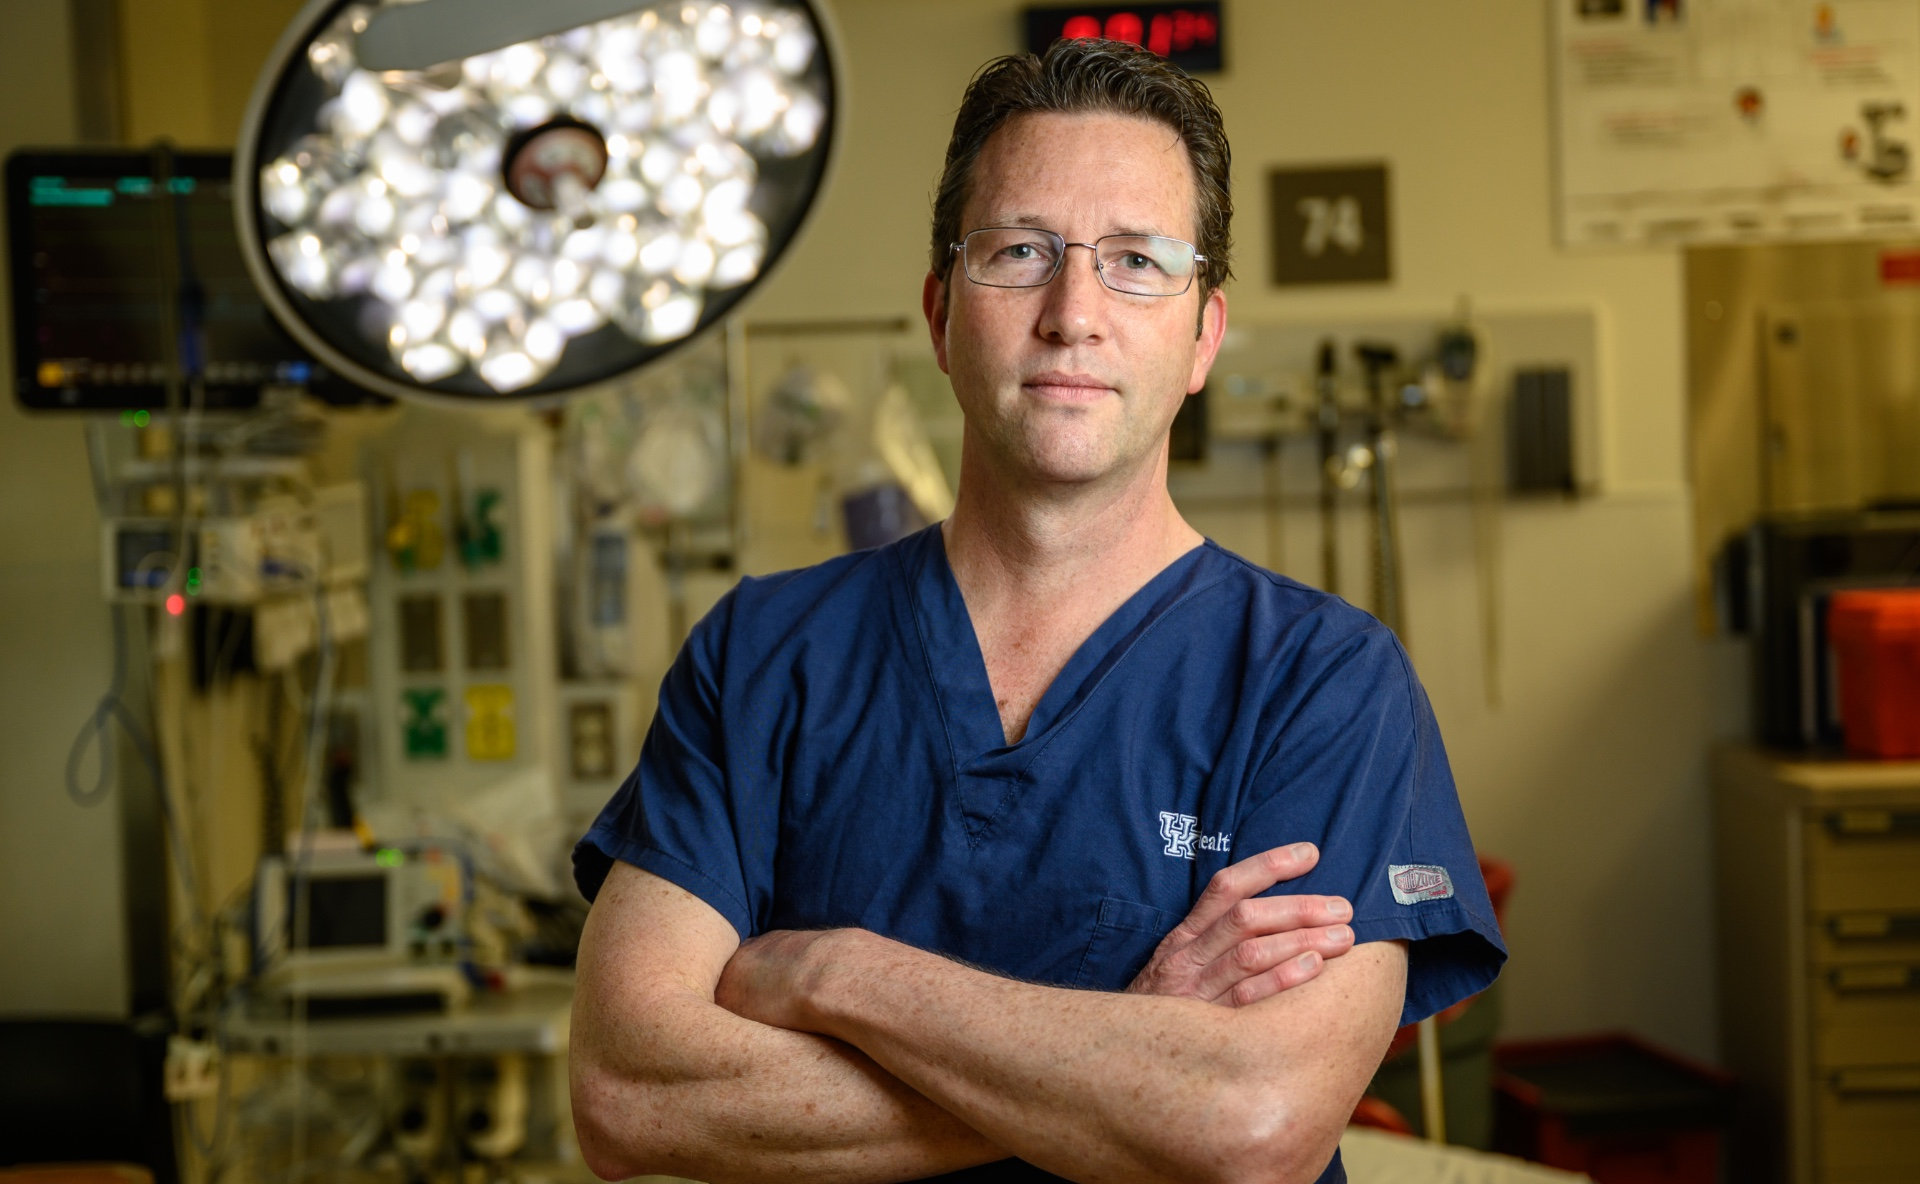 Dr. Andrew Bernard, a white adult man with brown hair, stands confidently in an empty operating room with his arms crossed. He is wearing a blue set of scrubs, and a pair of glasses.